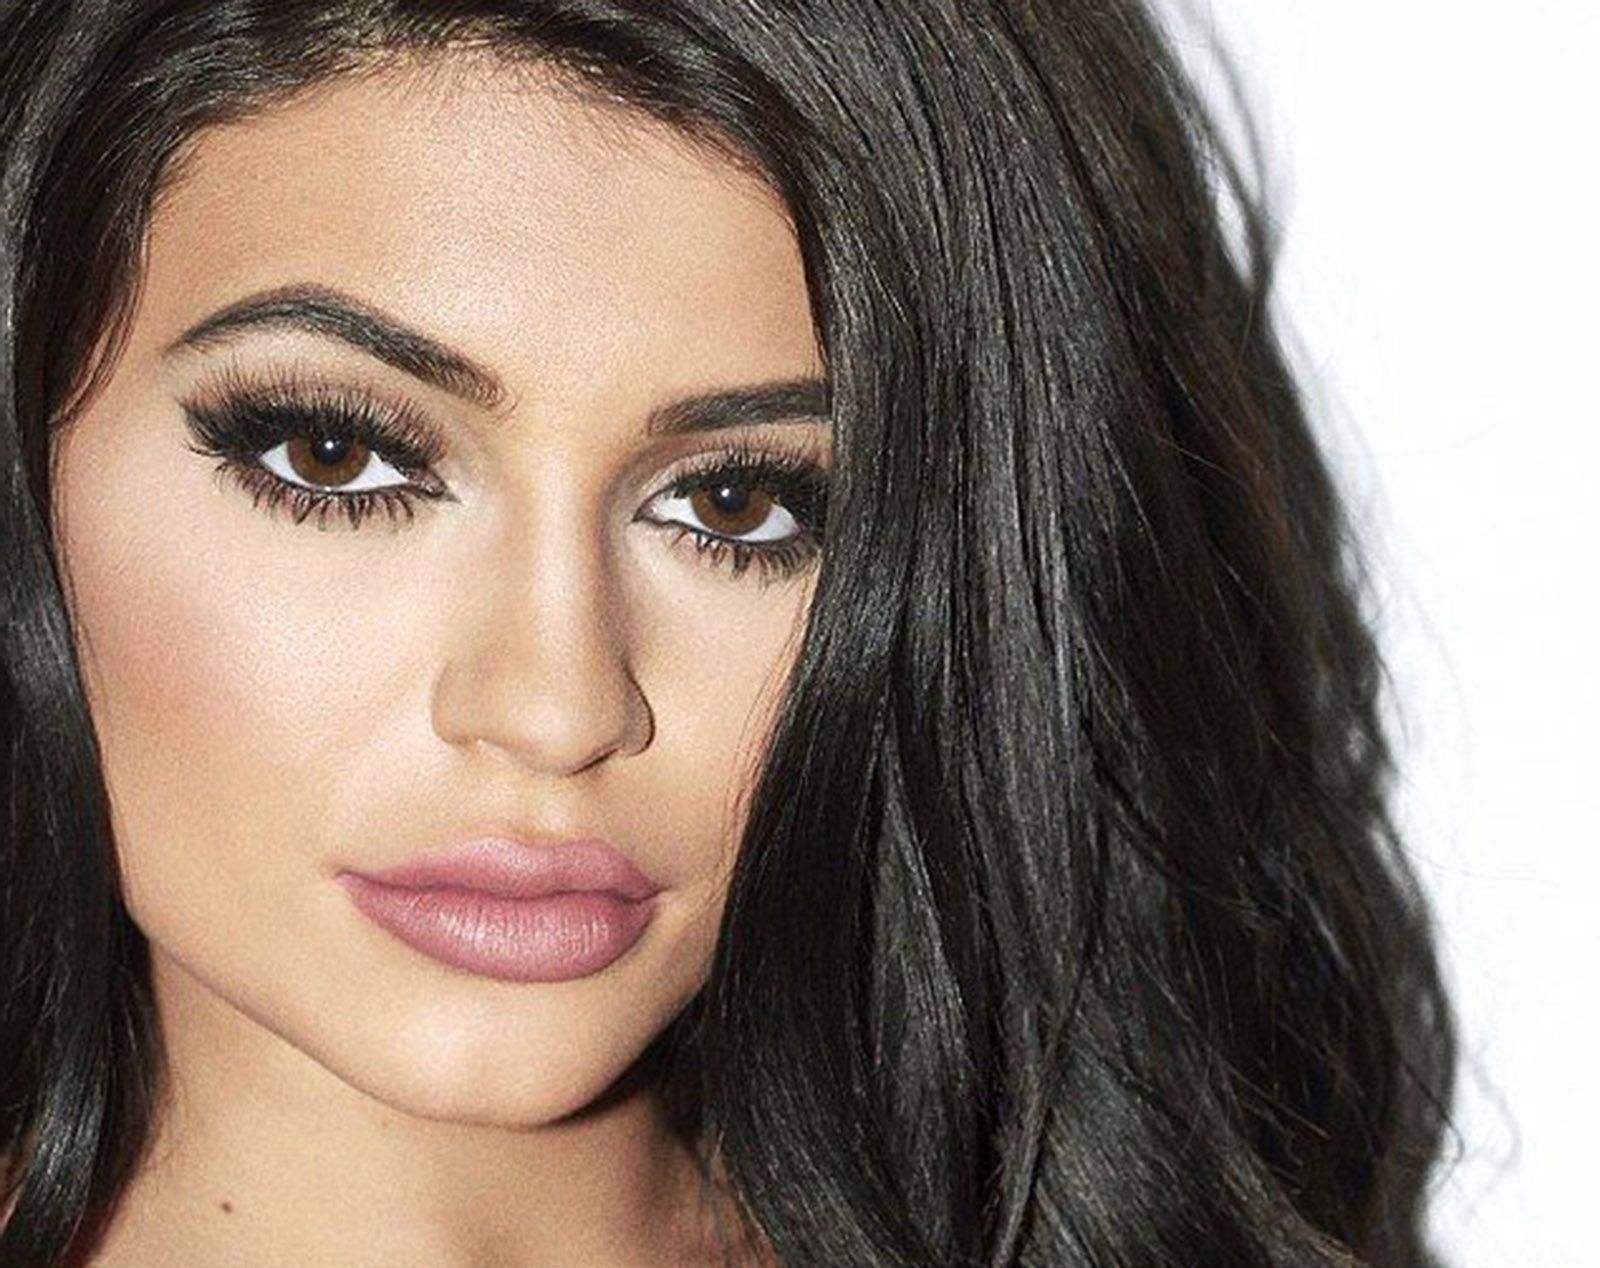 Free Wallpapers Of Cars And Bikes For Desktop 25 Kylie Jenner Wallpapers Hd High Quality